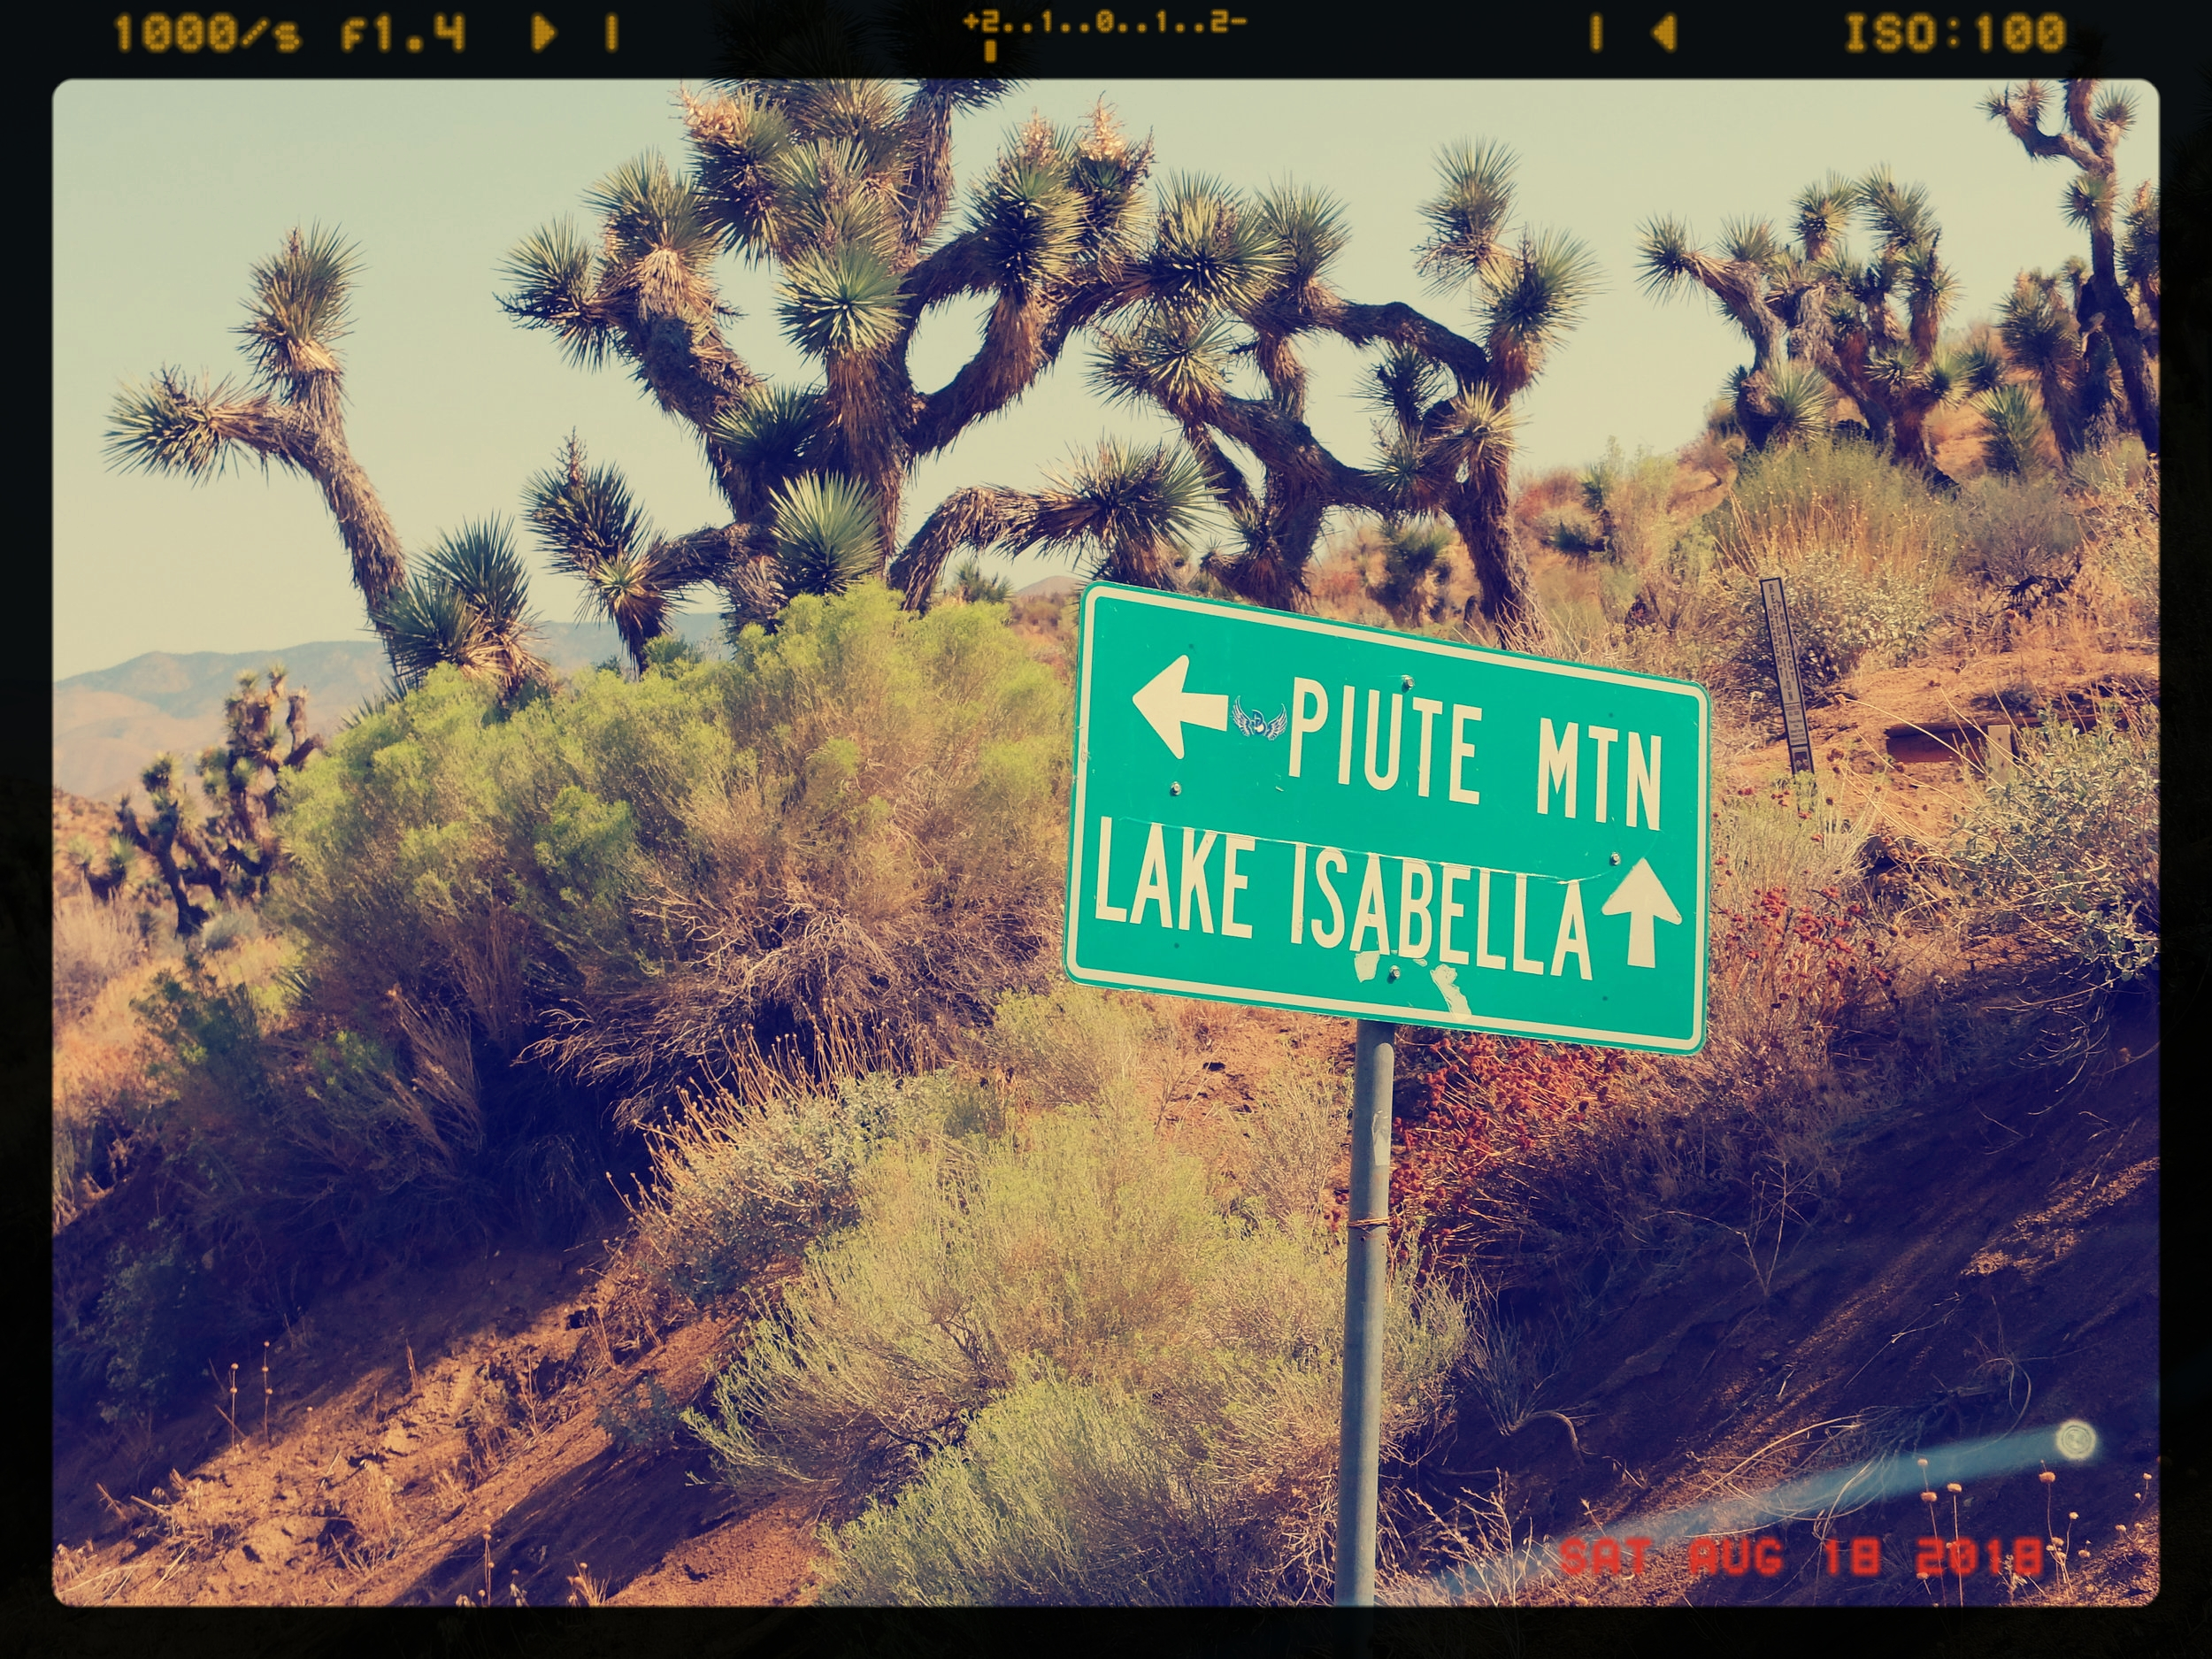 Look for the signs. From here, just 8 miles to go. Up.